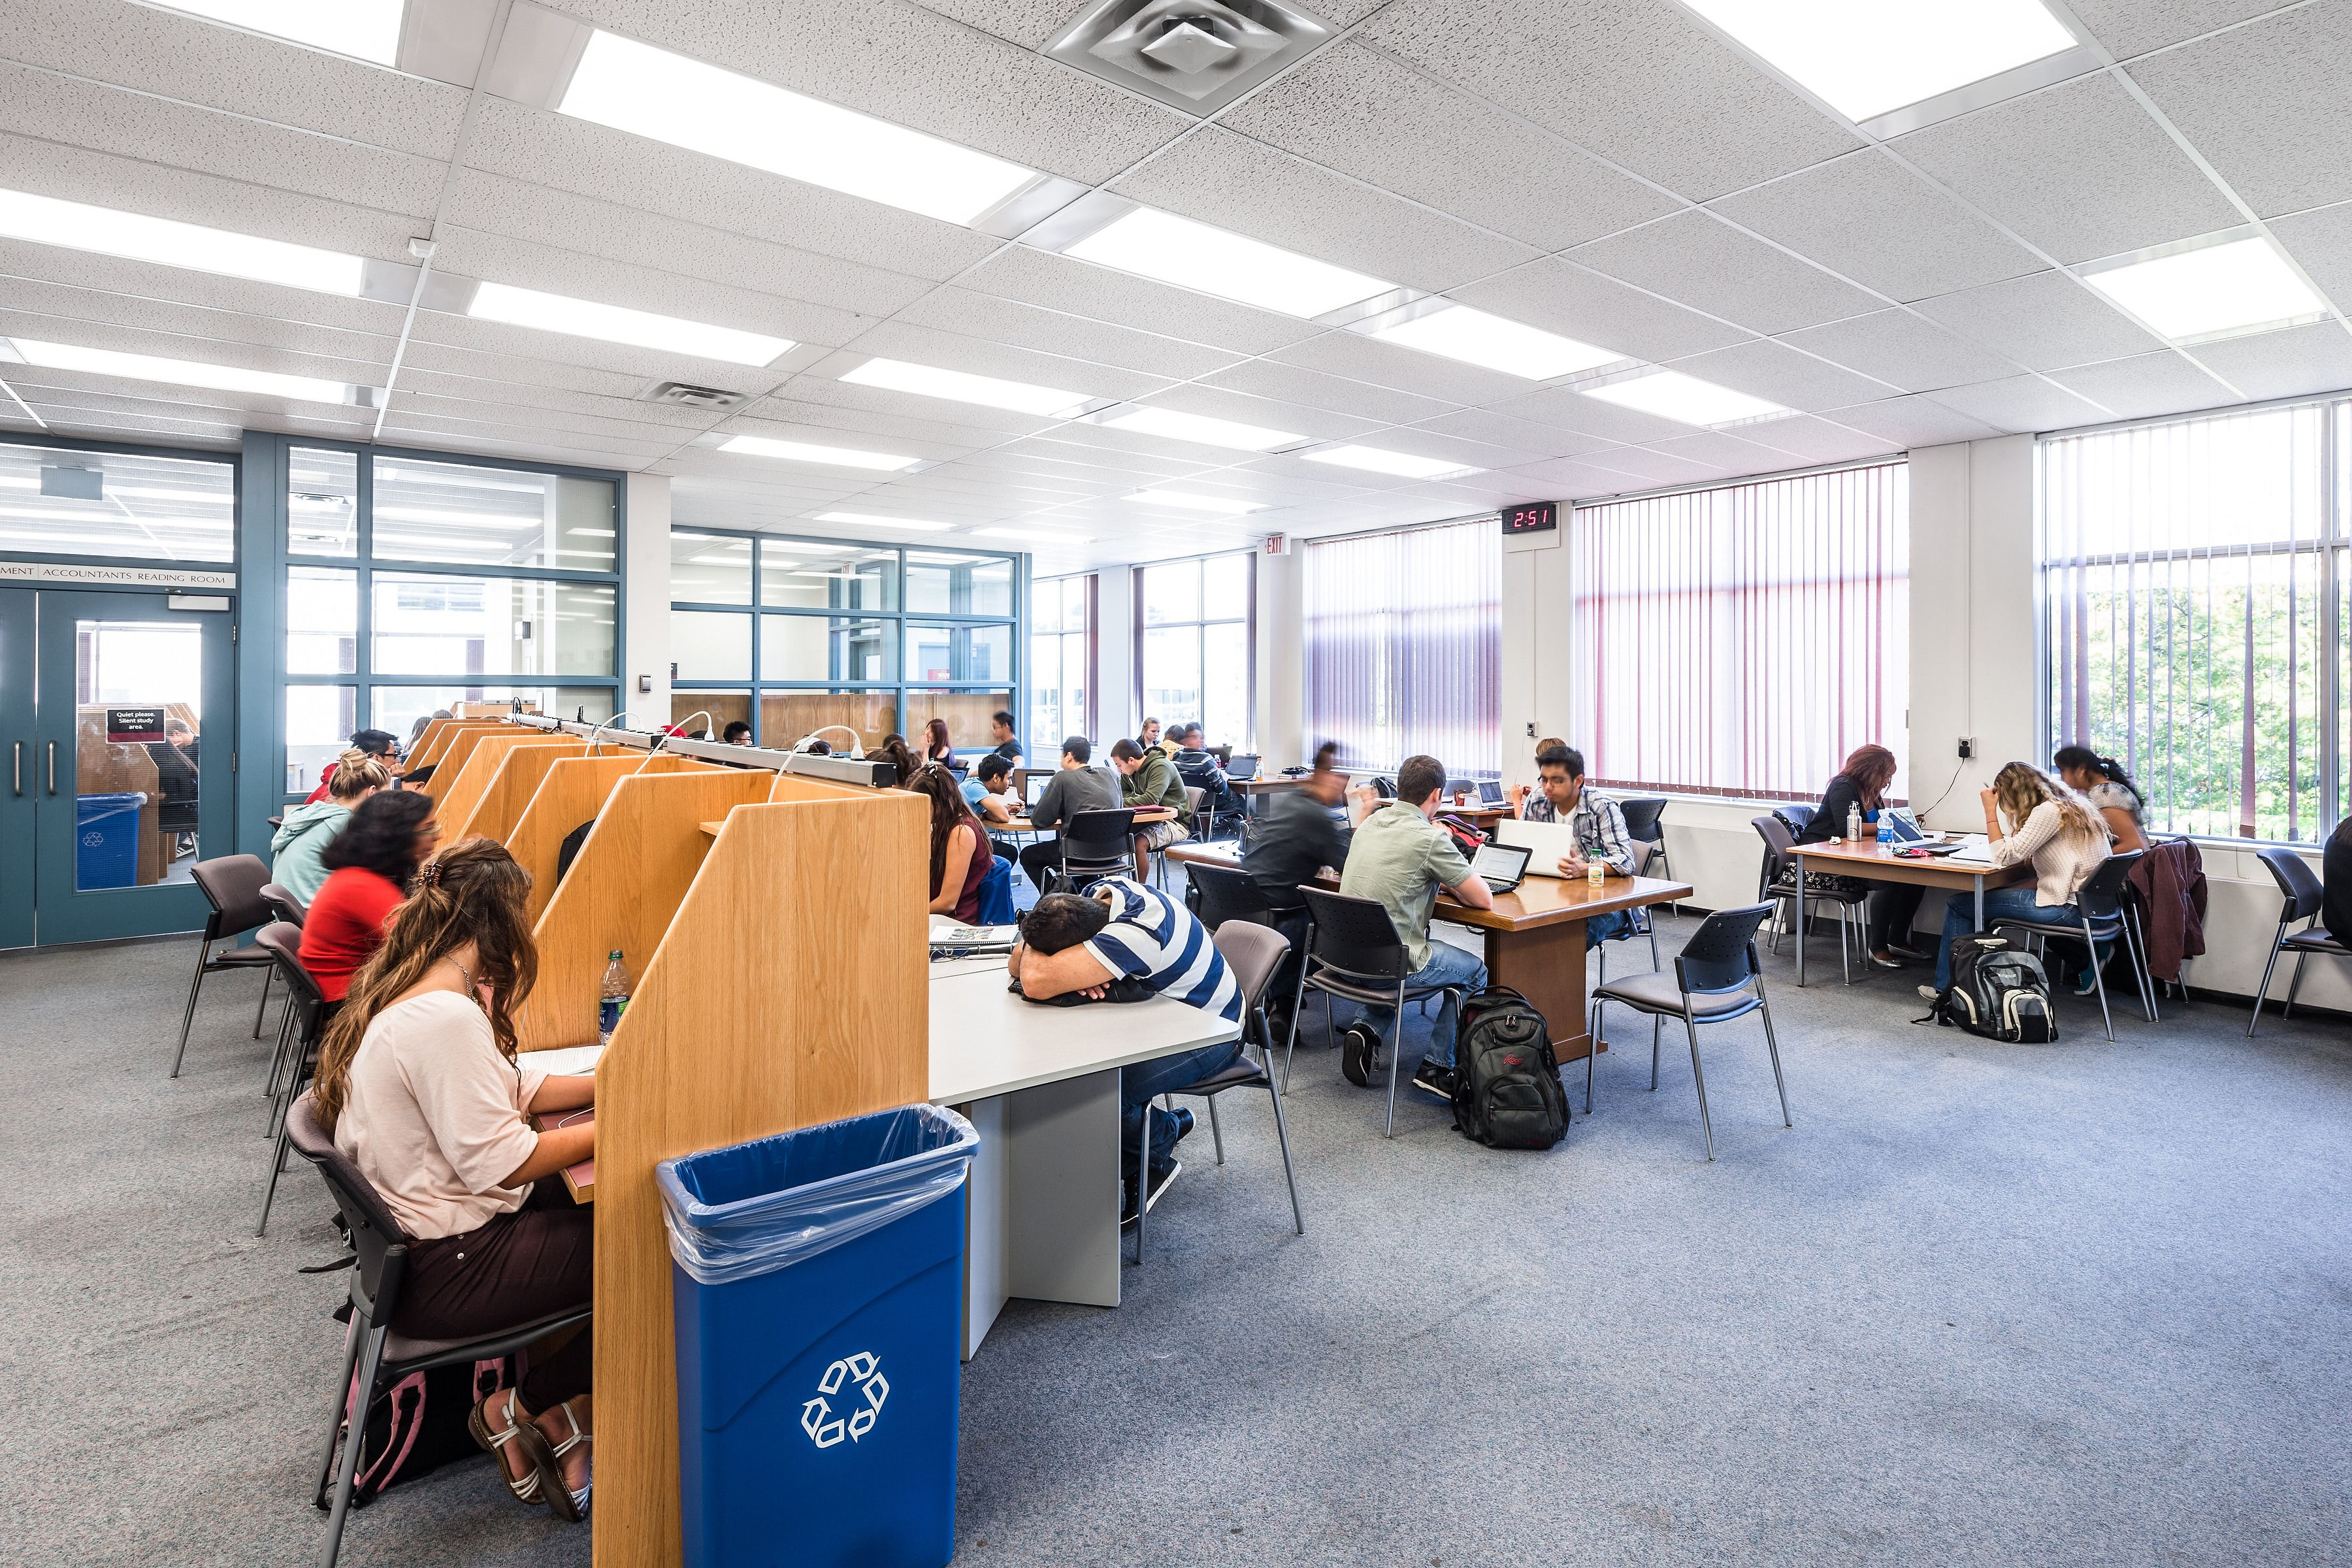 Photo of students studying in the now closed Innis Library's silent study room, carrels, open table area, and near windows